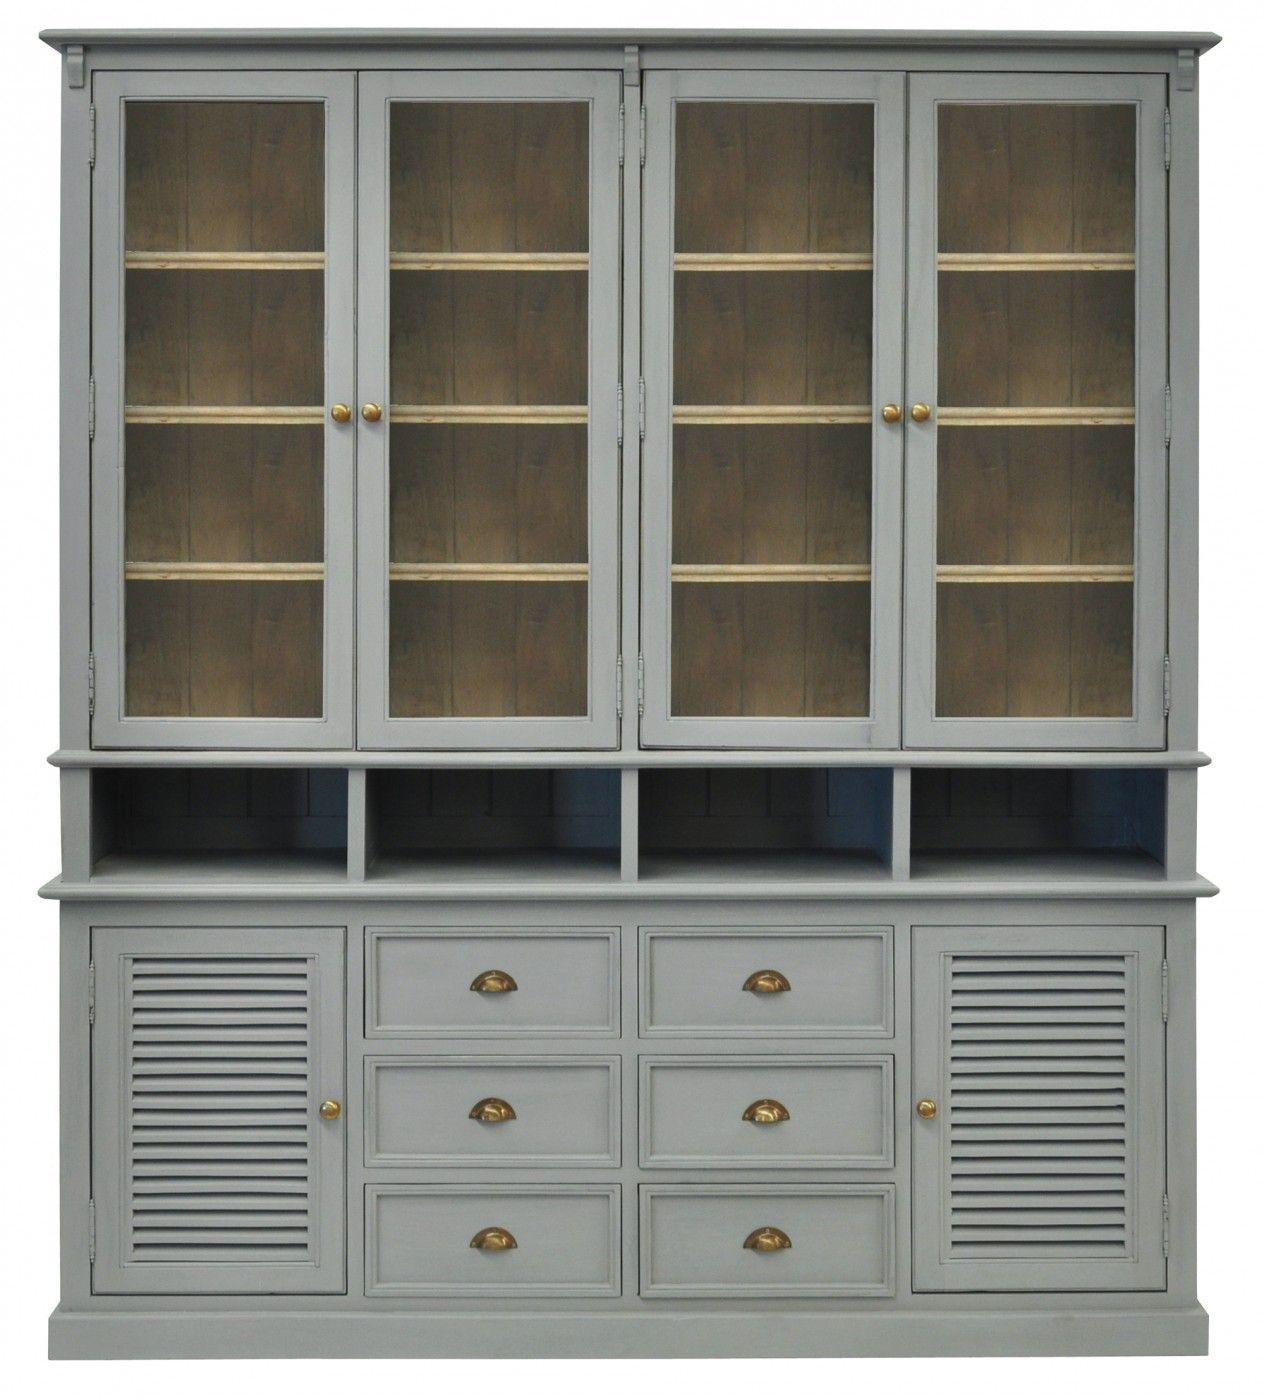 Featuring generous storage for books crockery glasses and